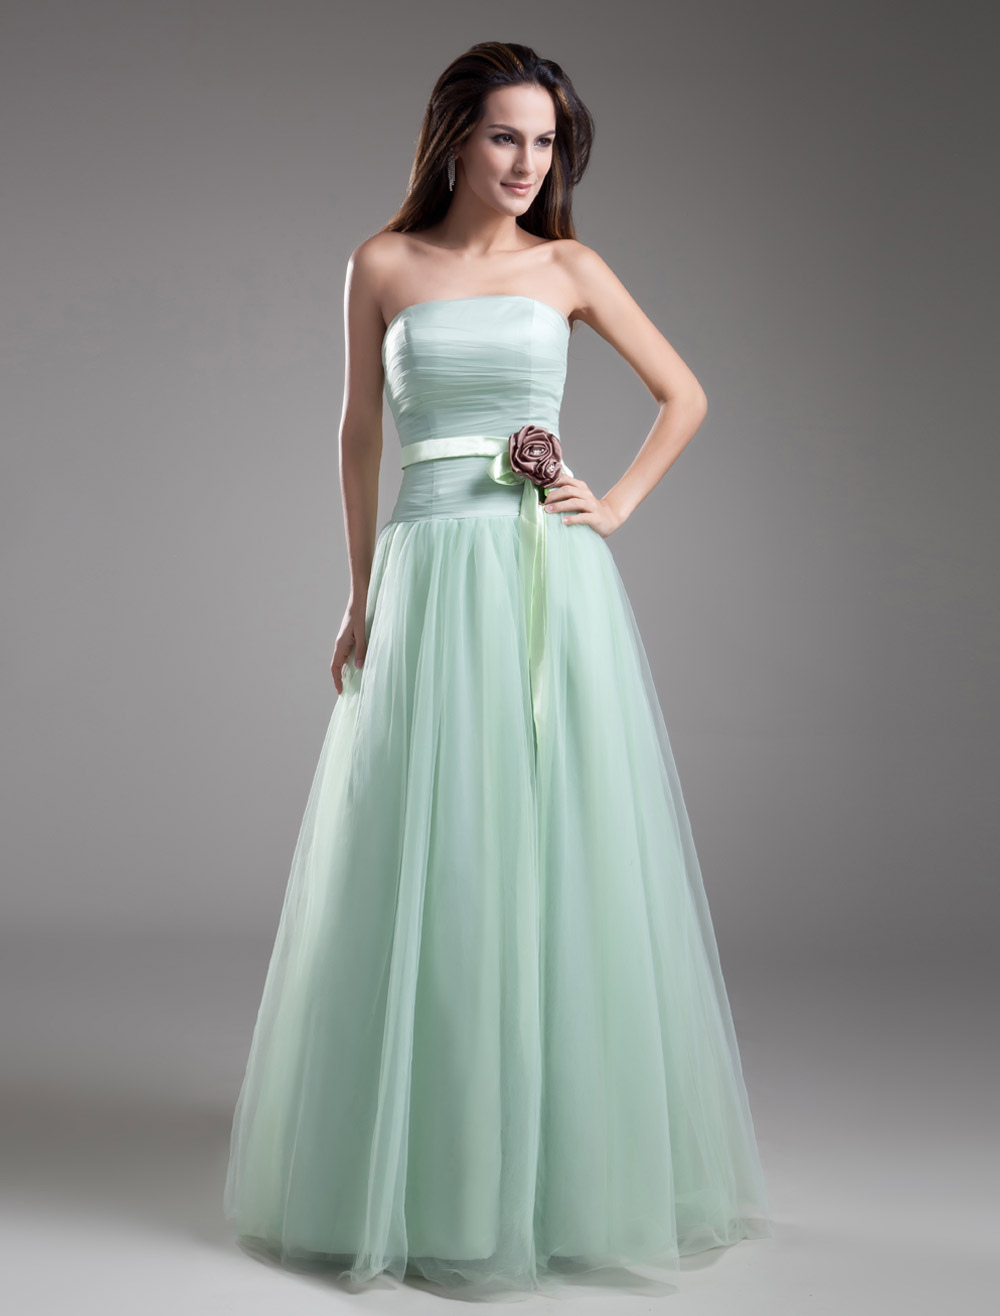 Strapless Evening Dress Pastel Green Formal Dress Waist Flower Floor ...